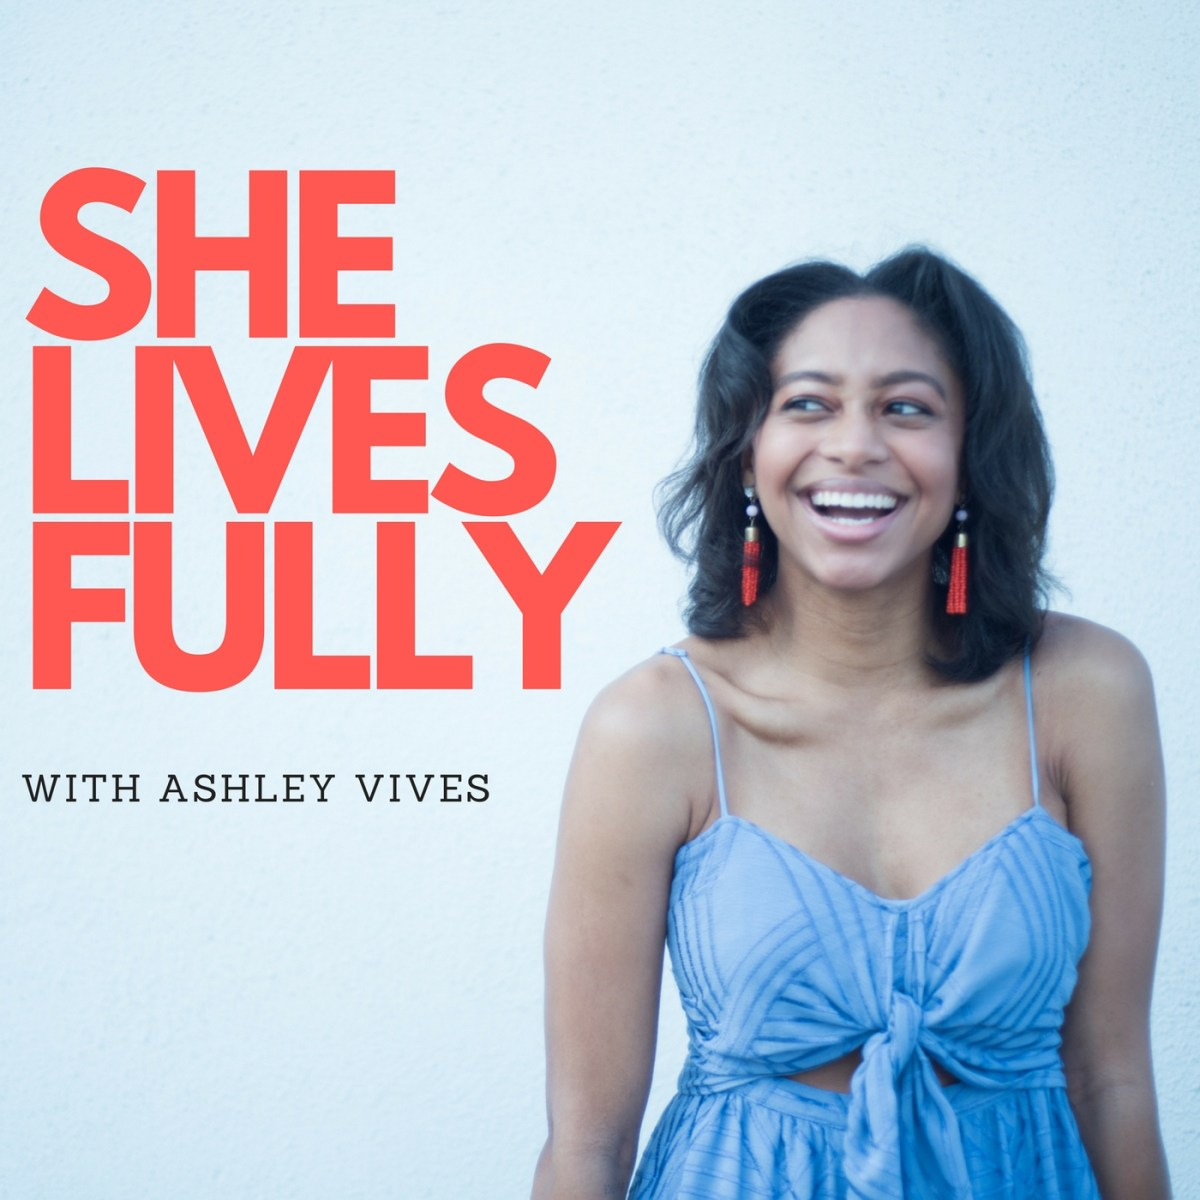 002: 5 Easy Ways to Practice Self-Care | She Lives Fully Podcast